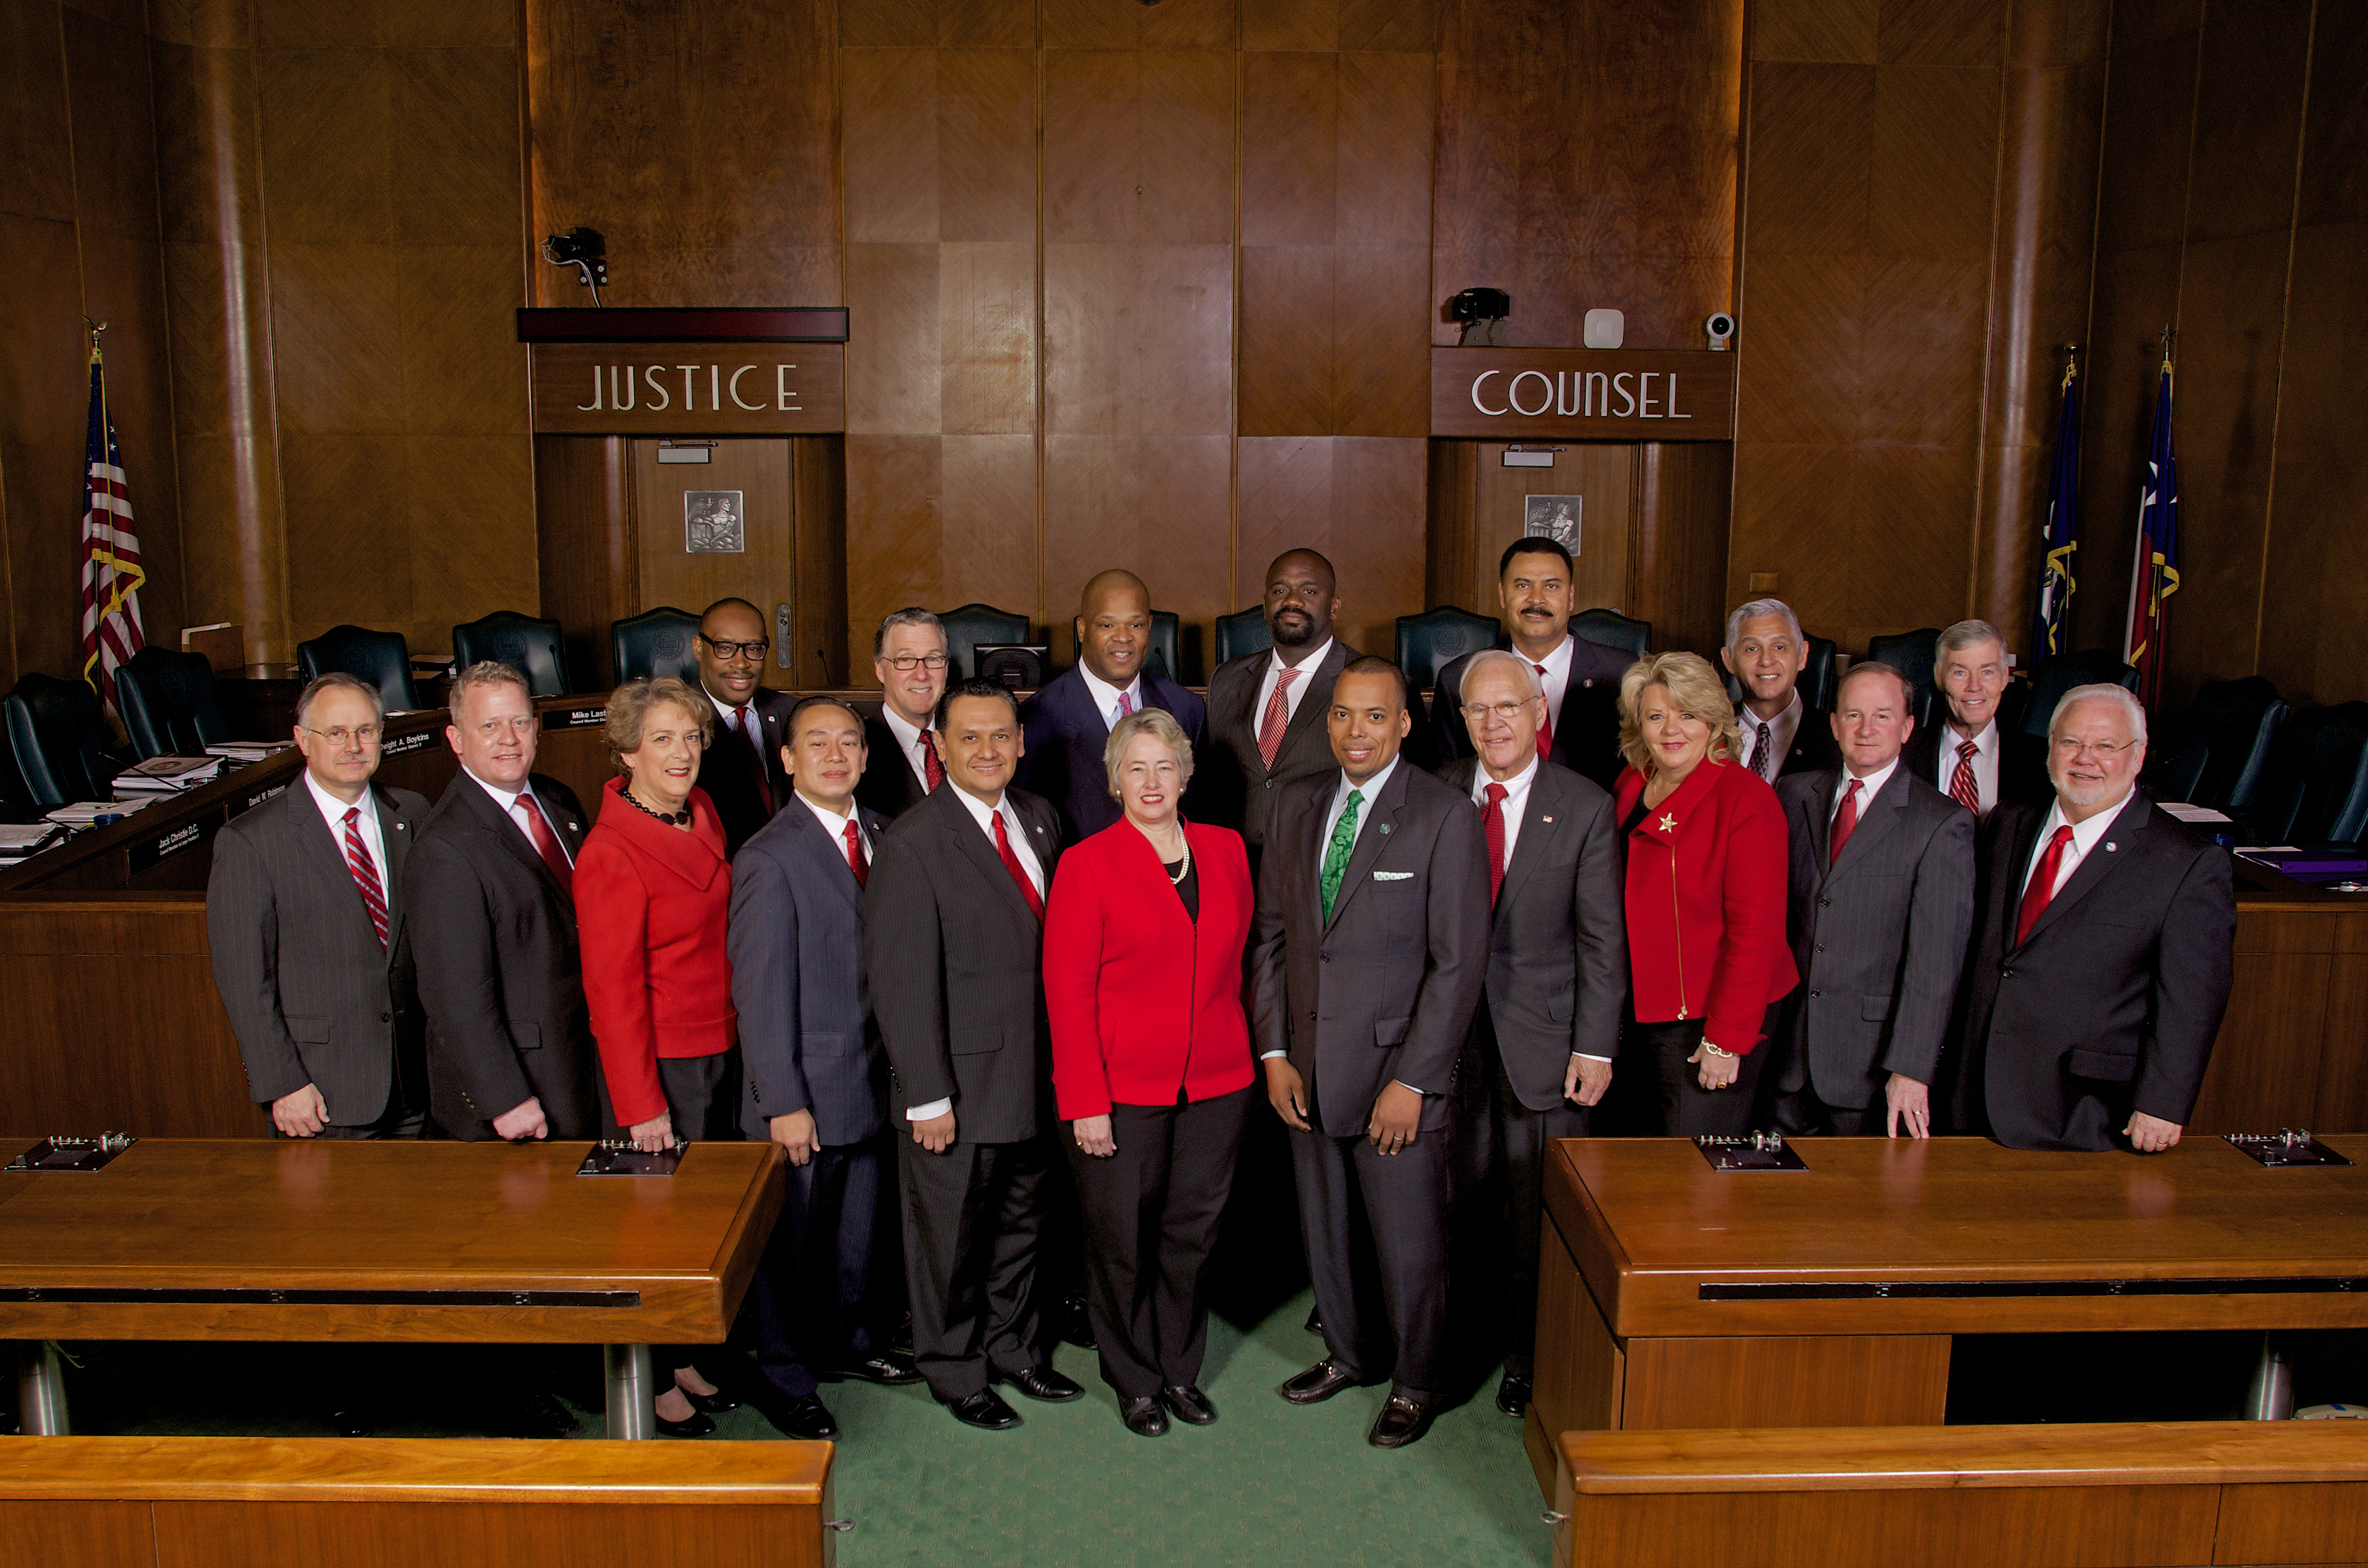 http://www.houstontx.gov/council/images/council2014.jpg